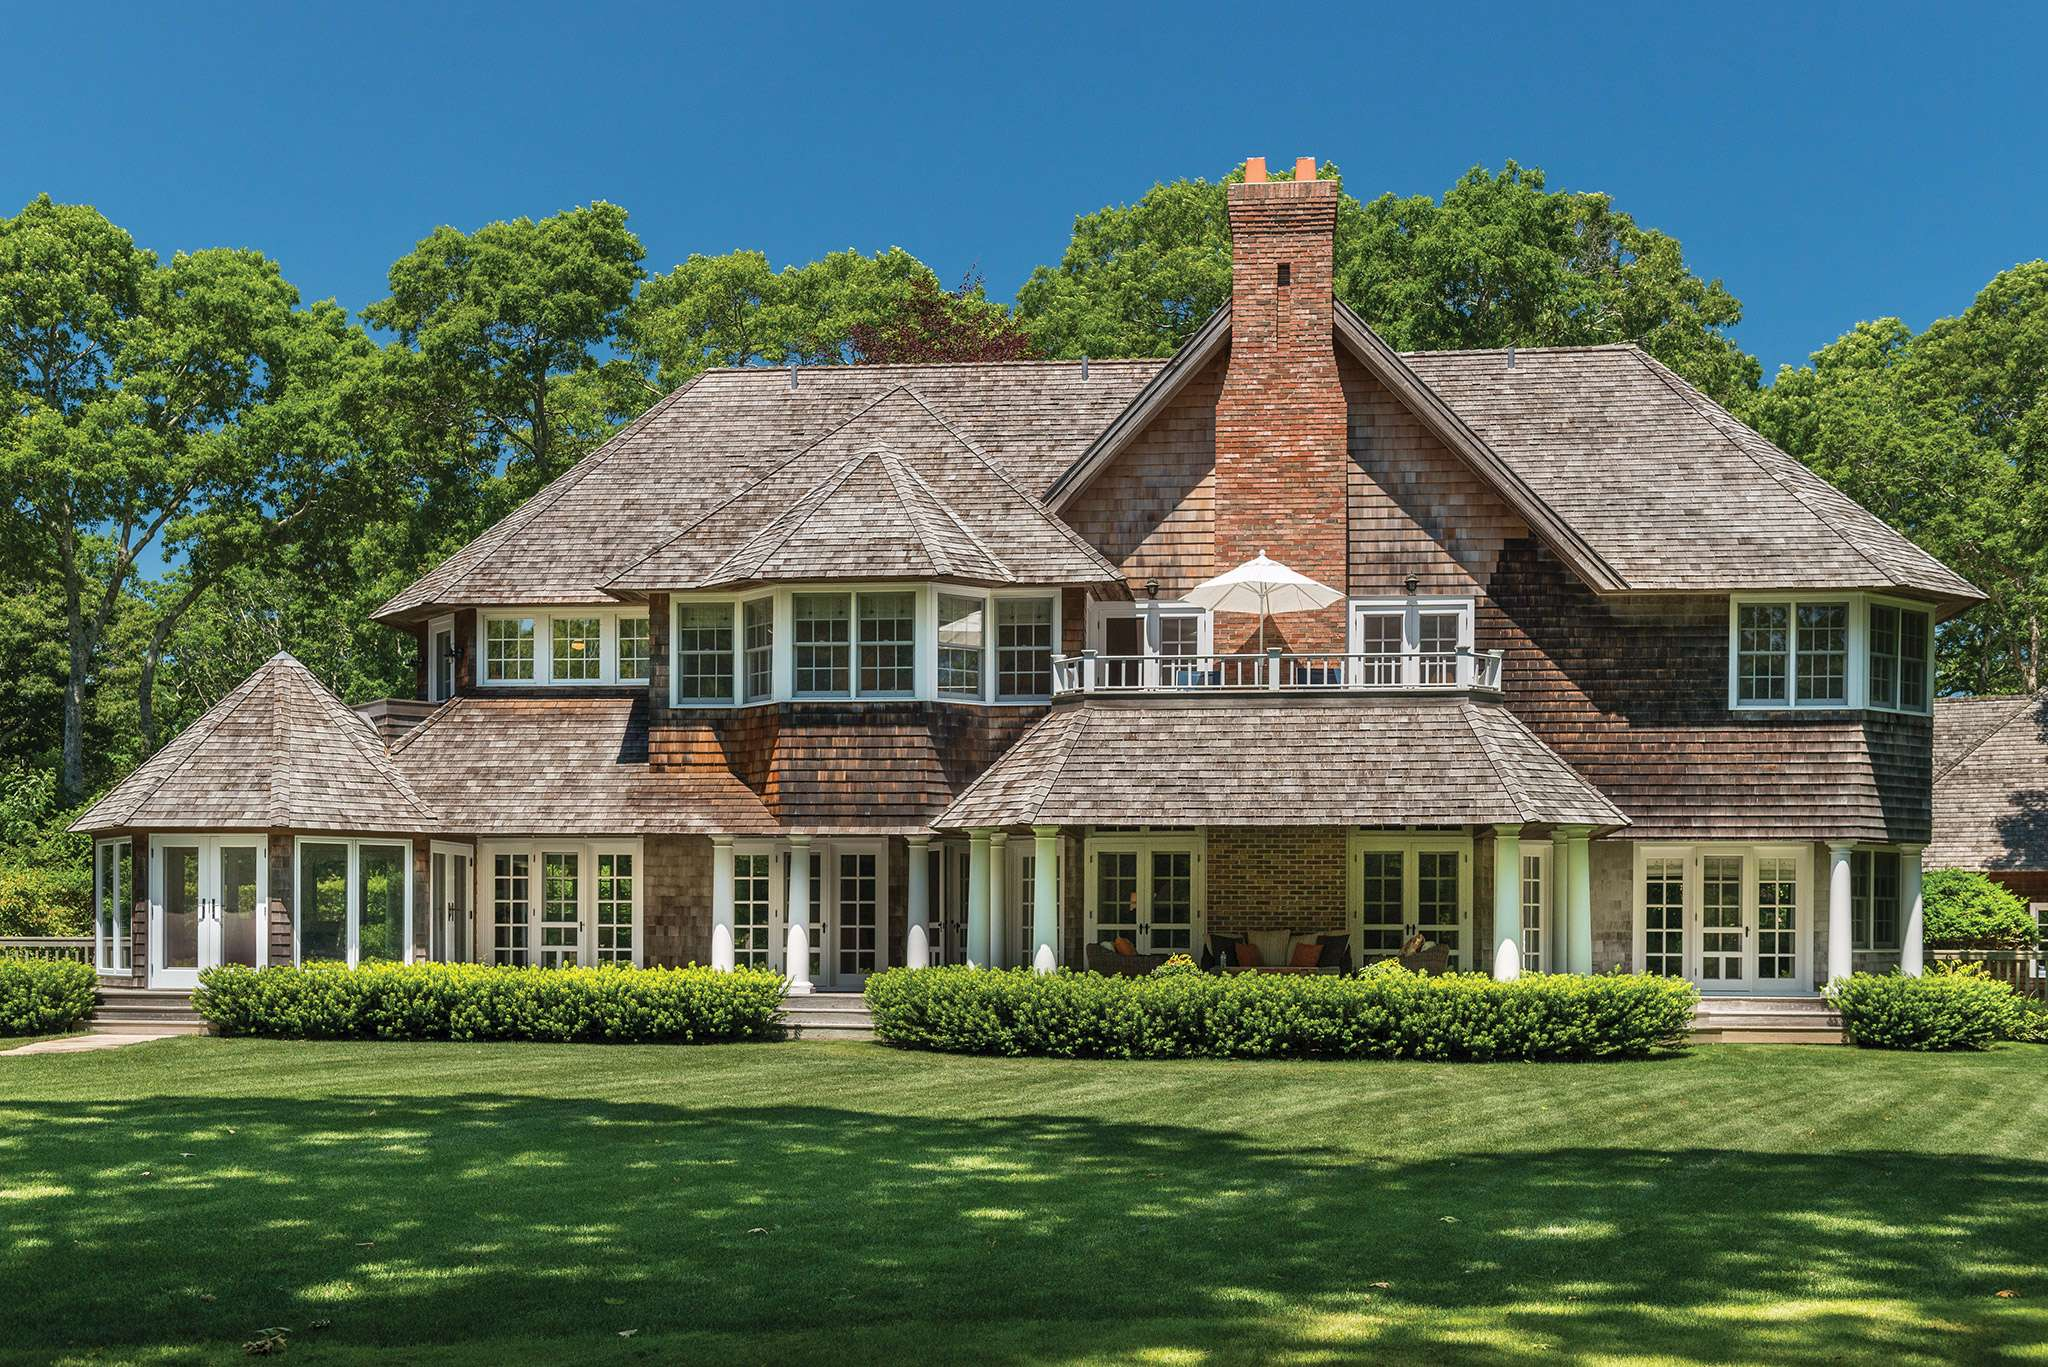 Single Family Home for Sale at Exceptional East Hampton Property 52 Ruxton Road, East Hampton, New York